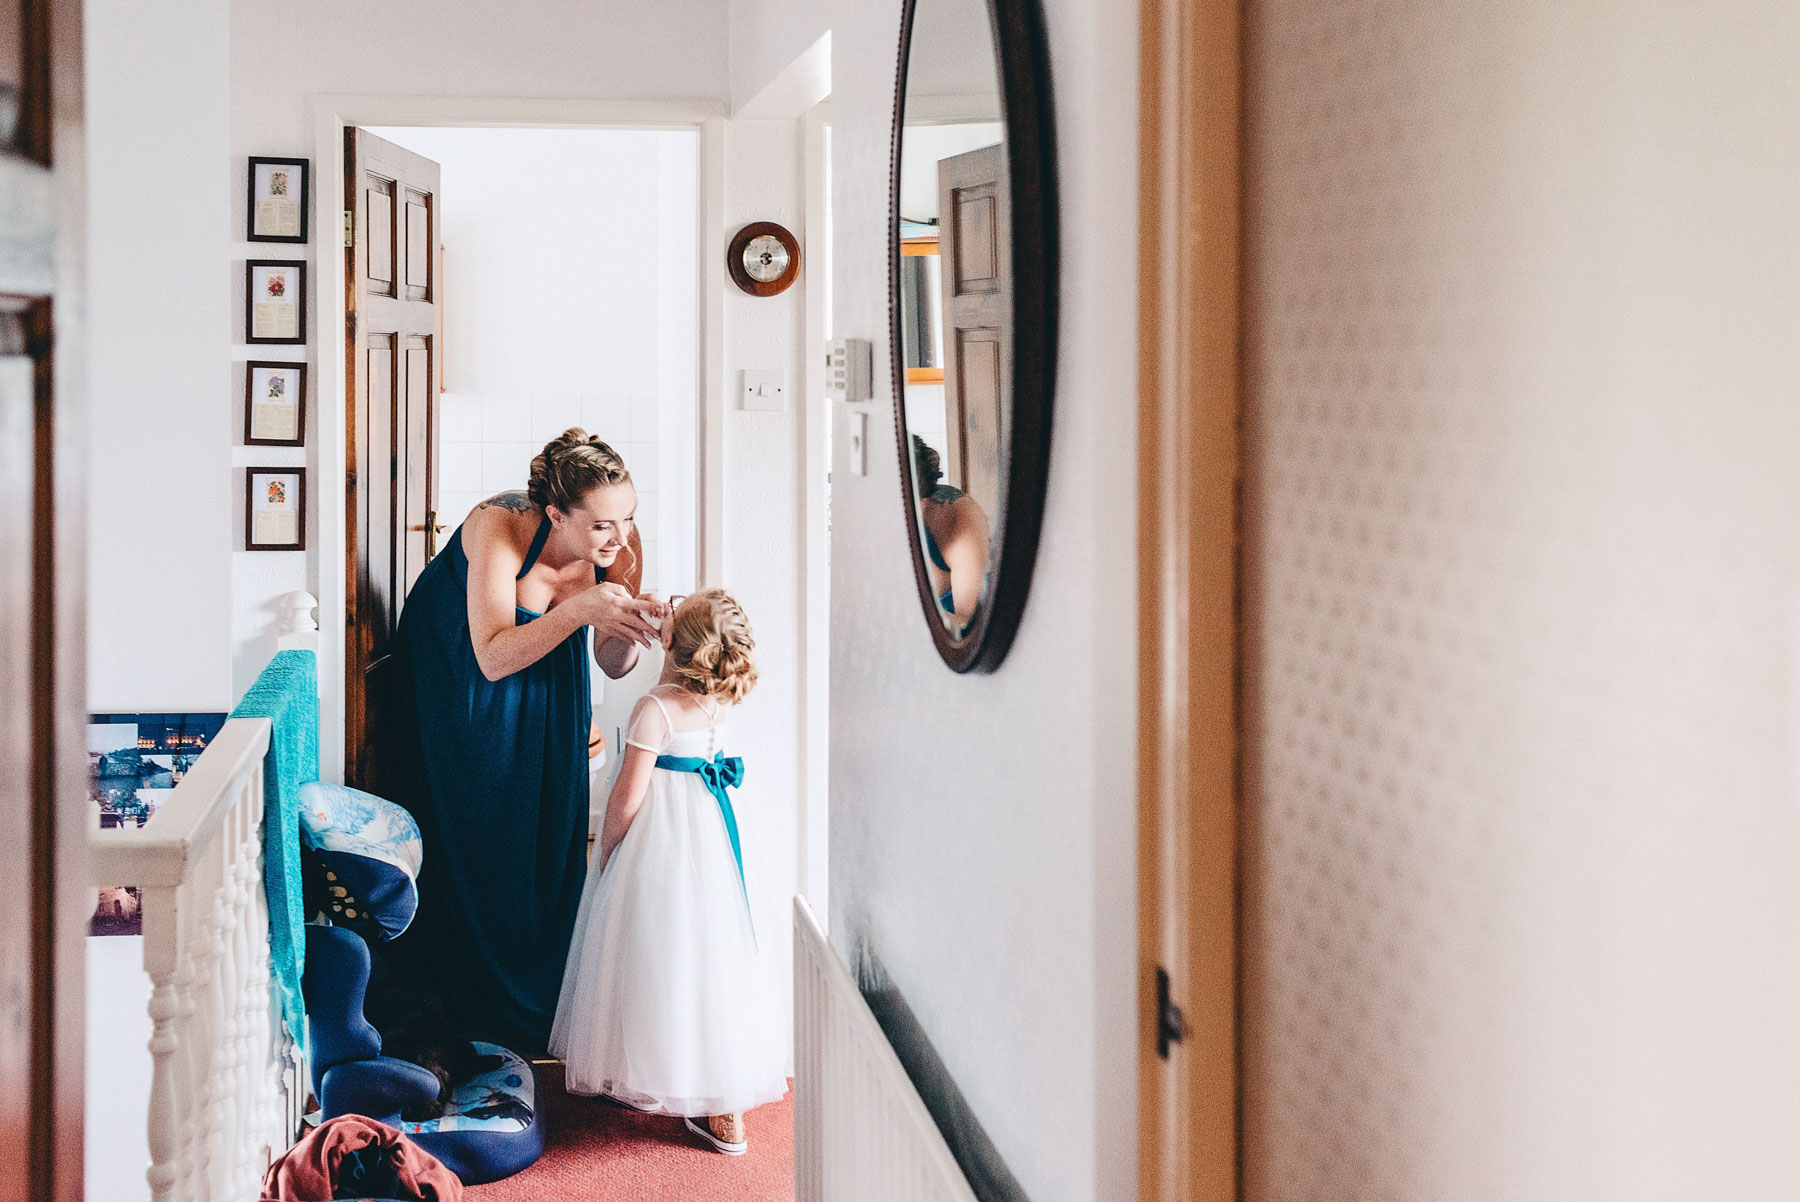 Bridesmaid has emotional moment with her daughter